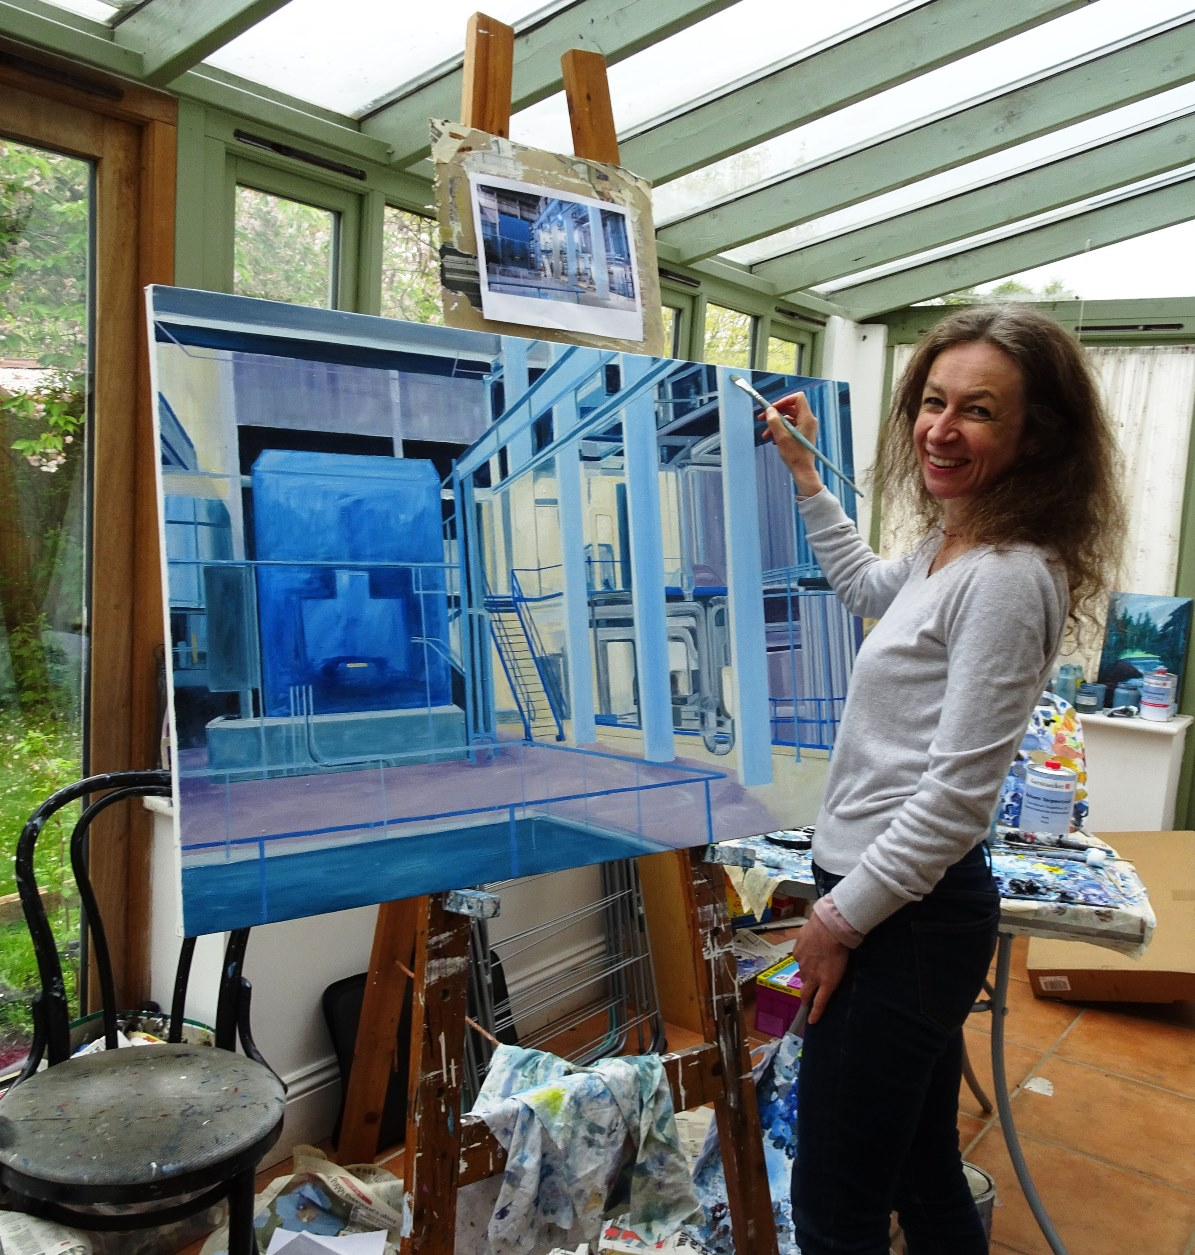 Sarah Moncrieff at work in her studio, putting the finishing touches to her painting of the Greatmoor turbine hall